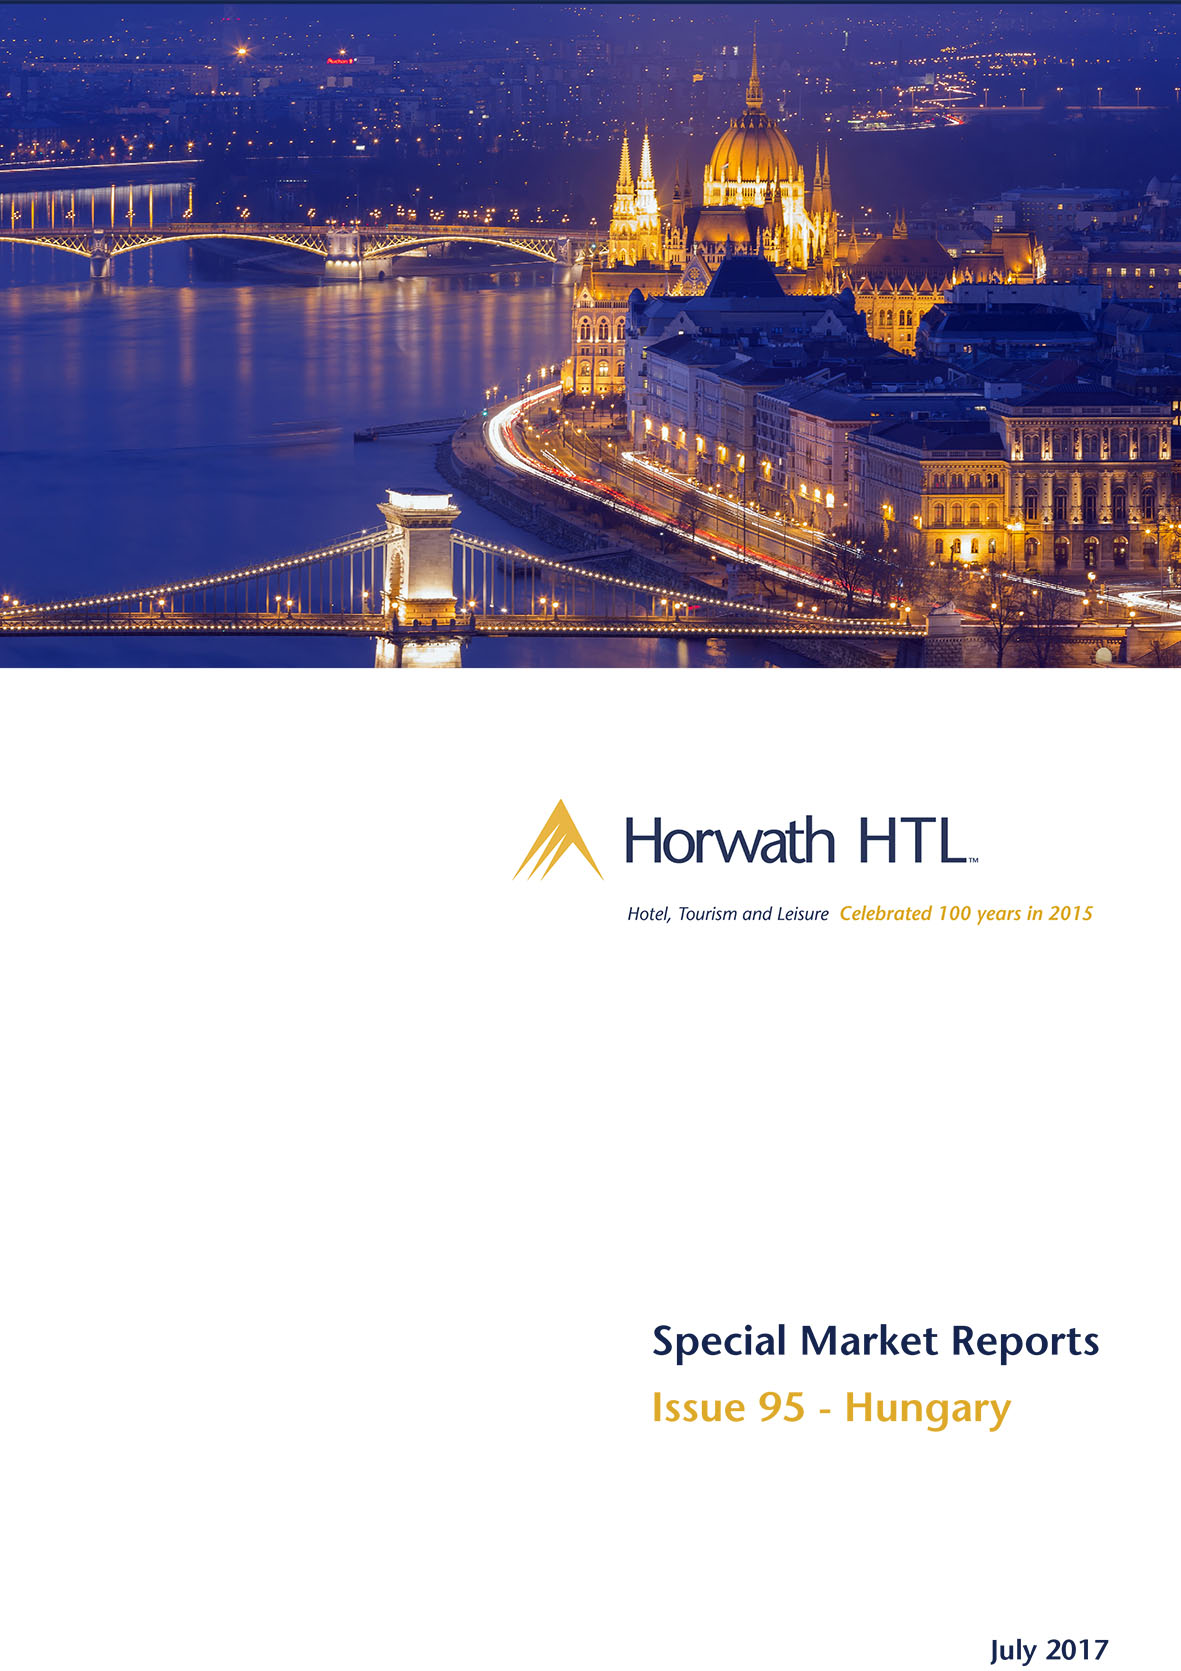 Market Report: Hungary